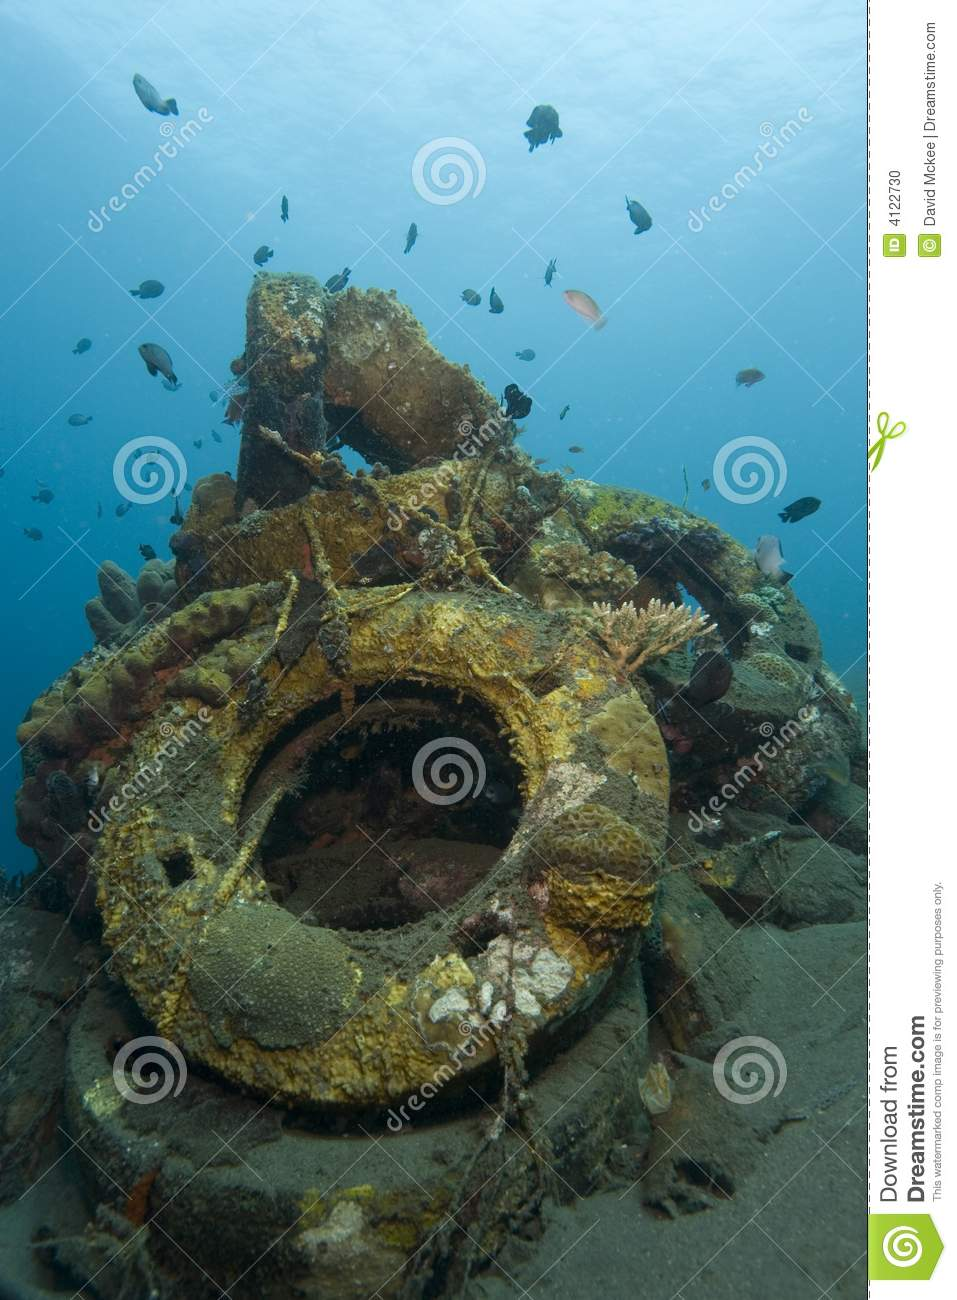 Images Stock Rubbish Underwater Trash Stock Photo Image Of Underwater Relax